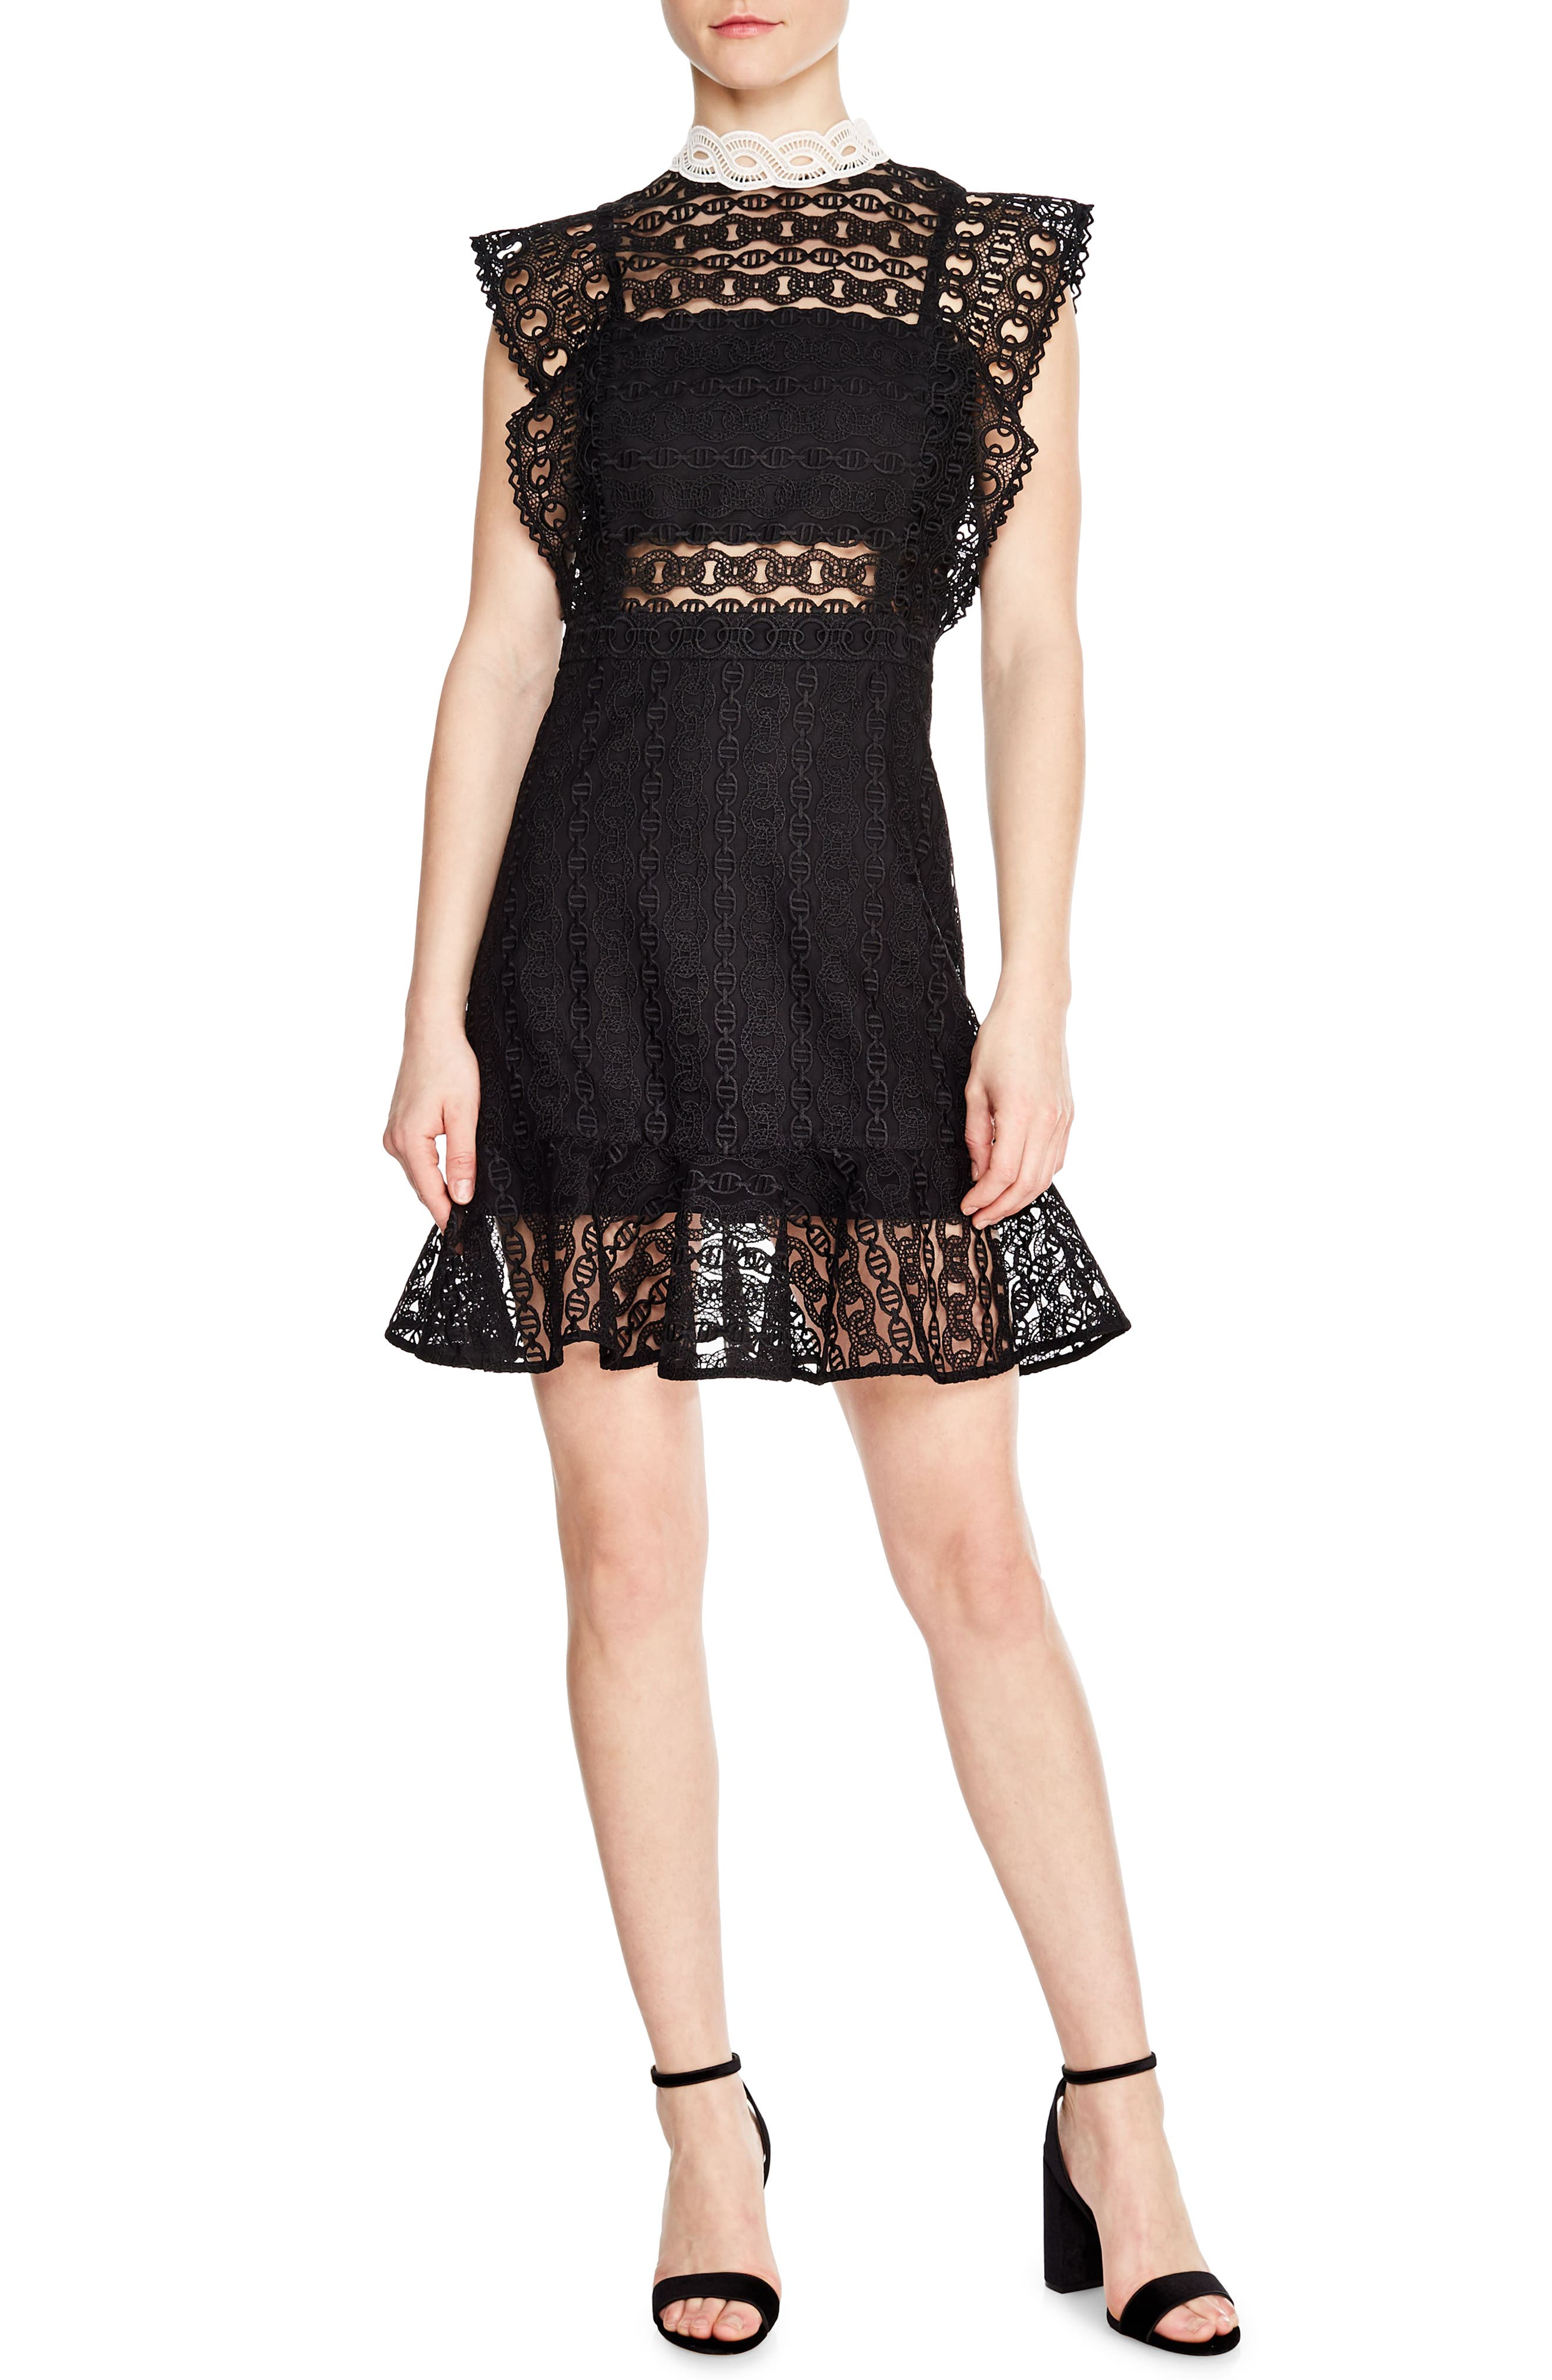 SANDRO, France Chain Link Lace Dress, Main thumbnail 1, color, BLACK